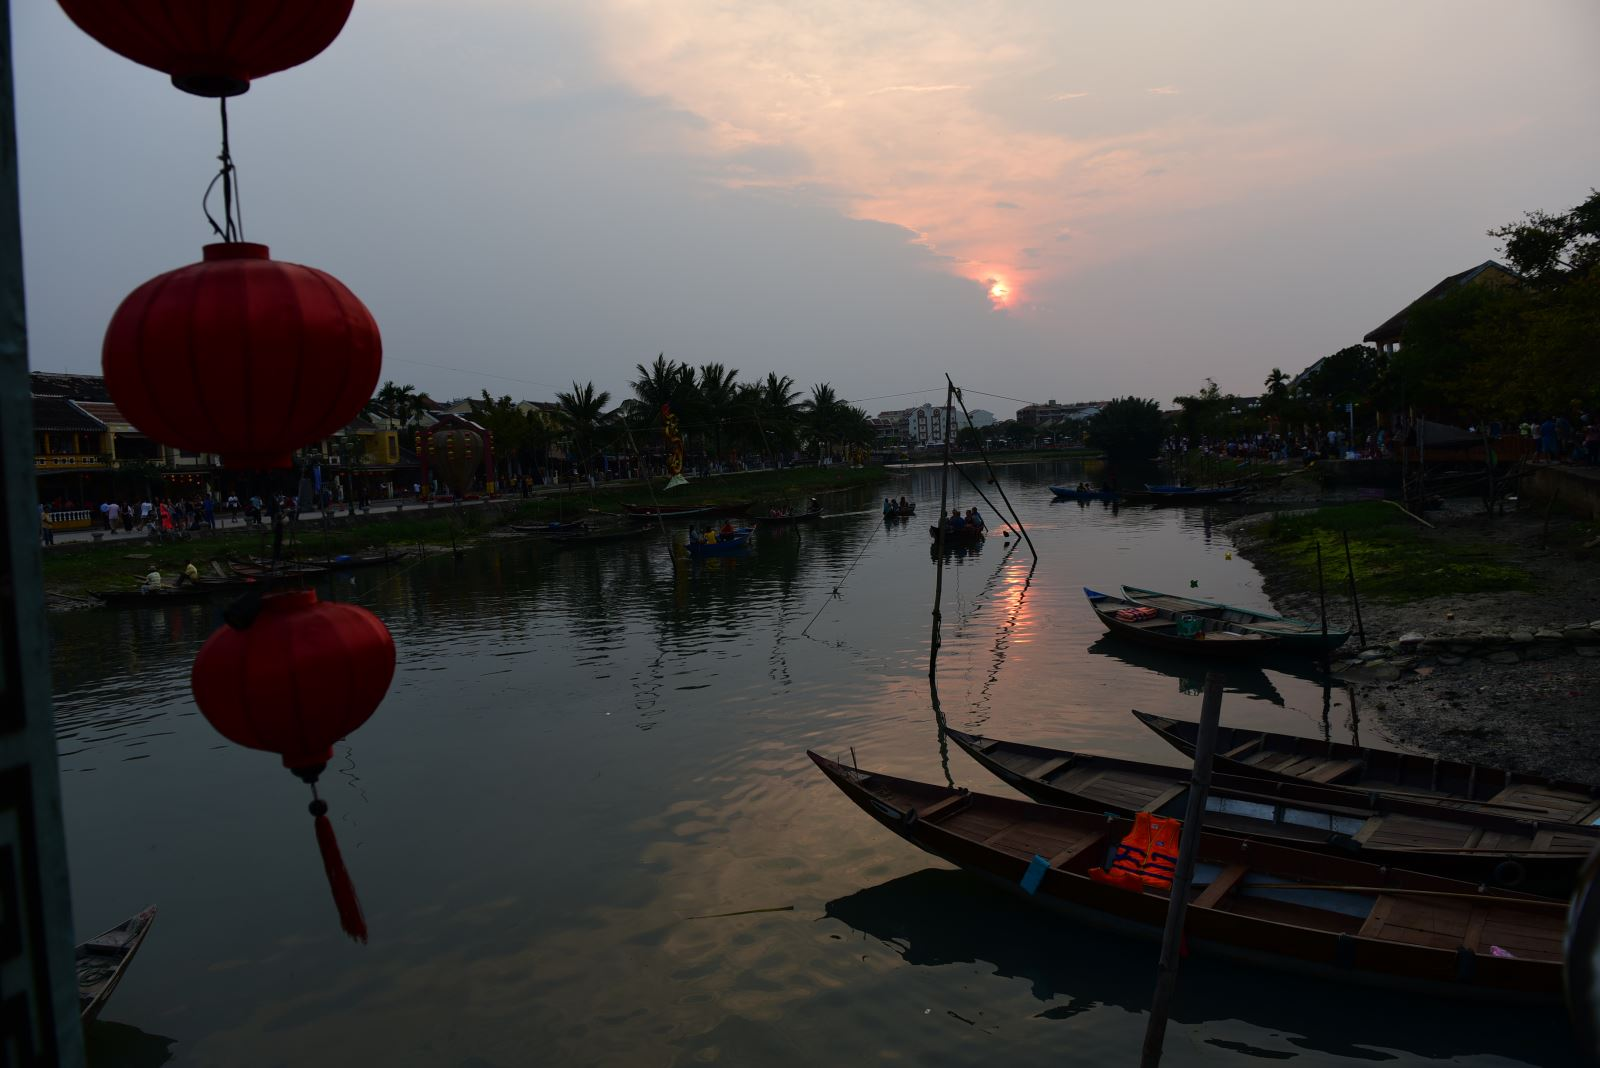 Thu Bon river in the sunset.